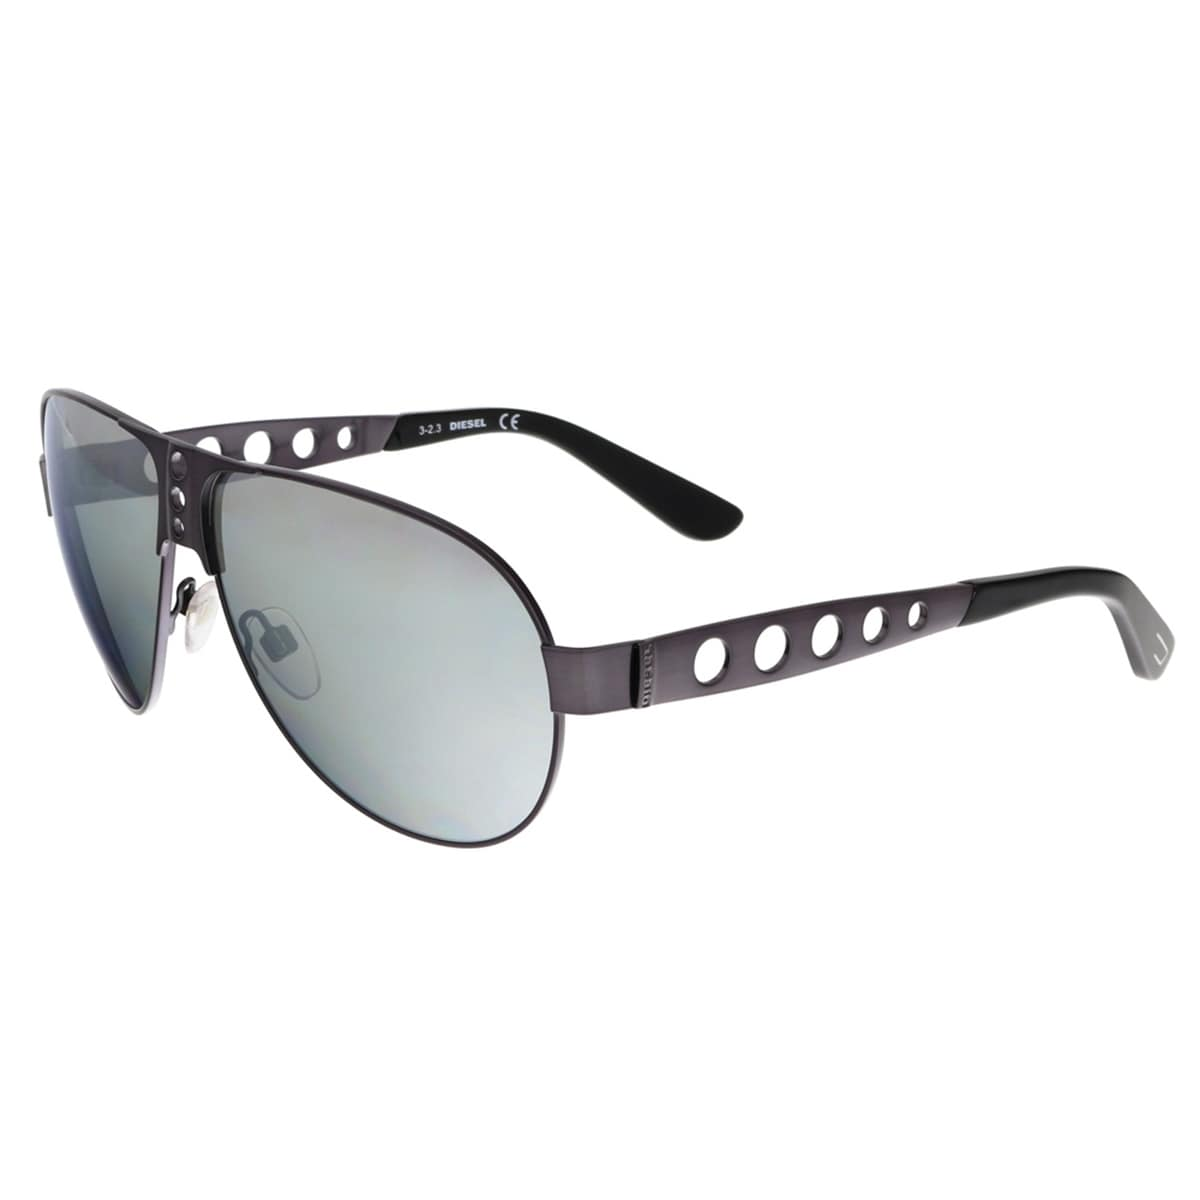 0270f24884 Shop Diesel DL0092 09C Gunmetal Aviator Sunglasses - 63-10-140 - Free  Shipping Today - Overstock - 13831698